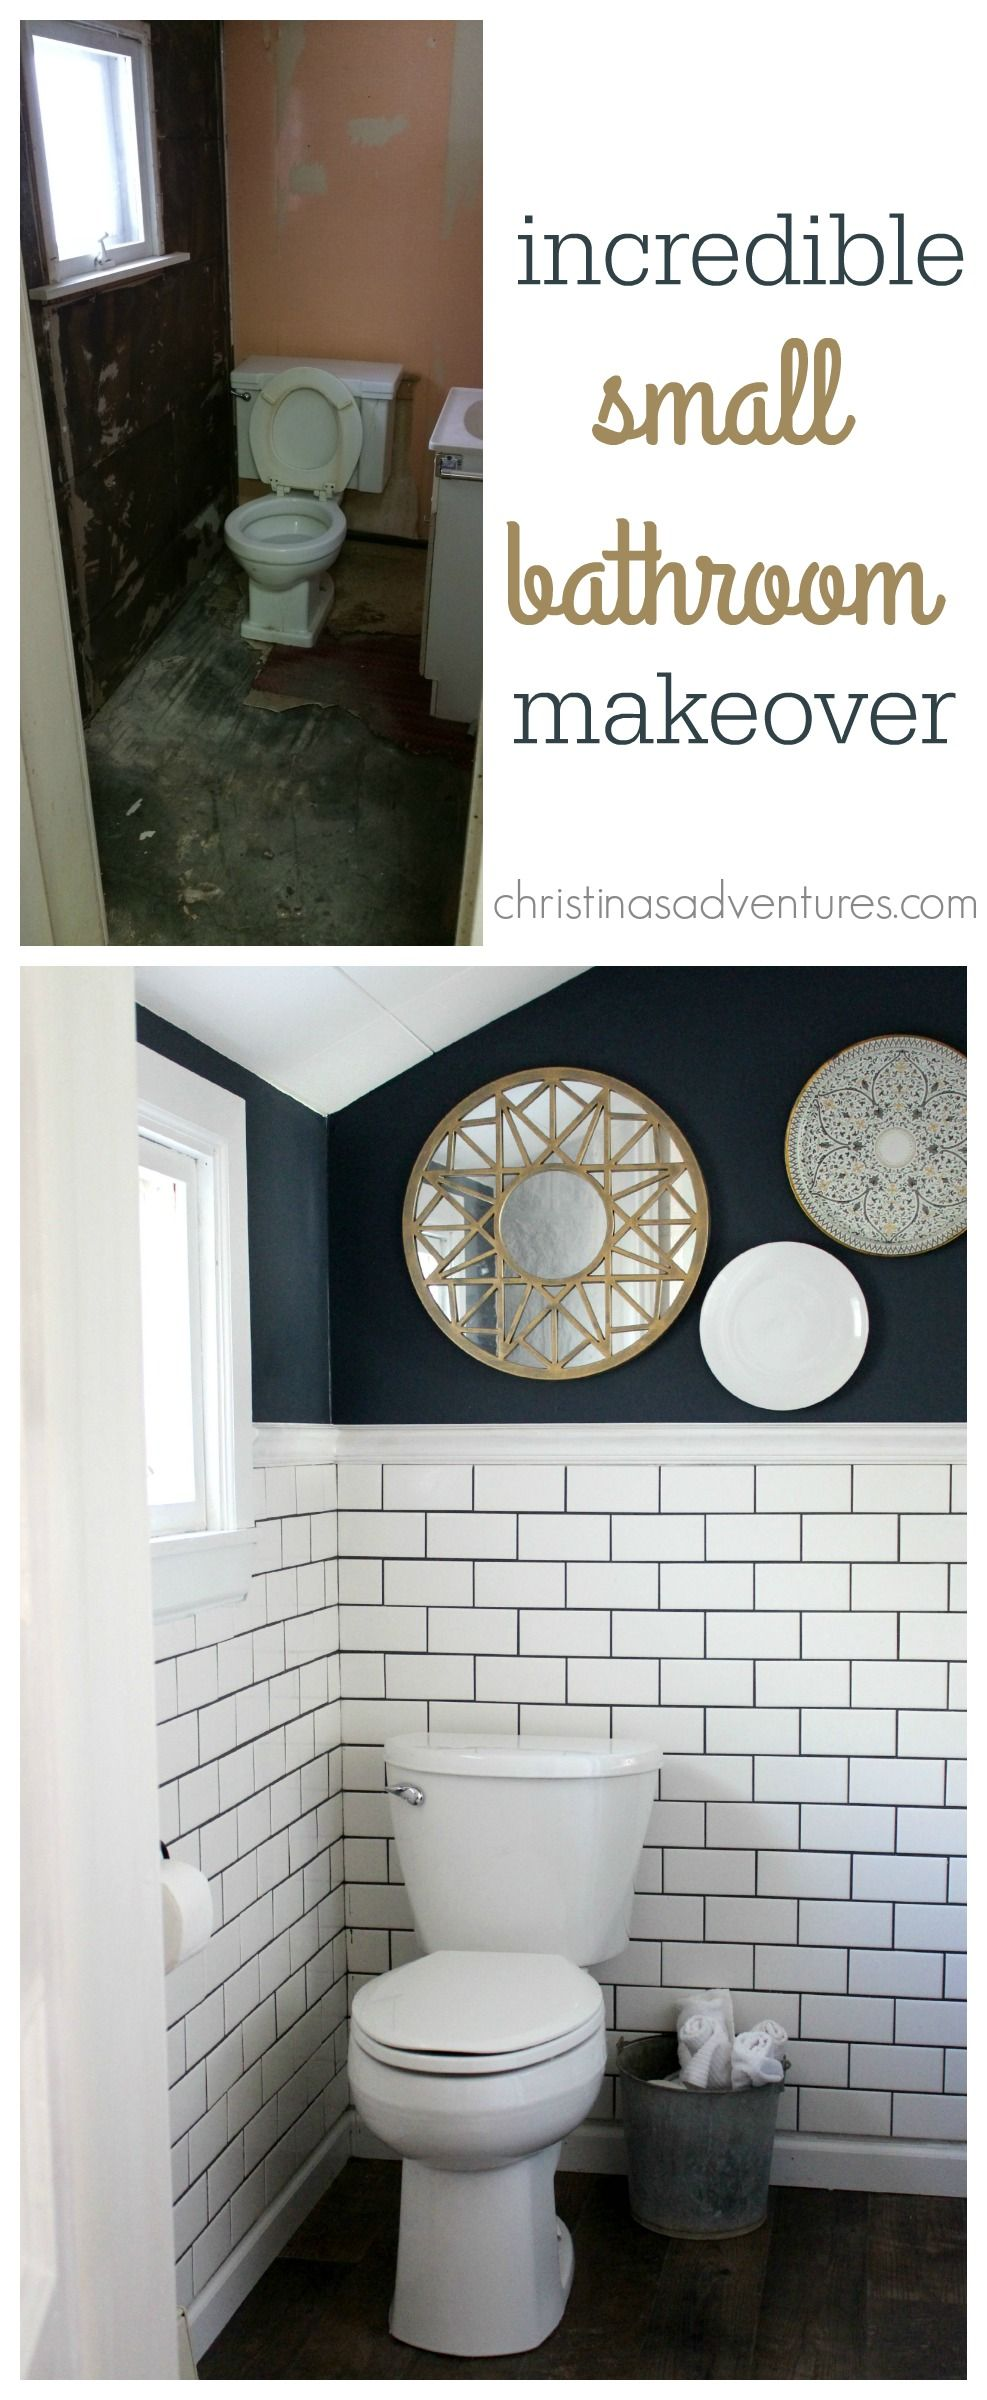 Small Bathroom Makeover Christinas Adventures